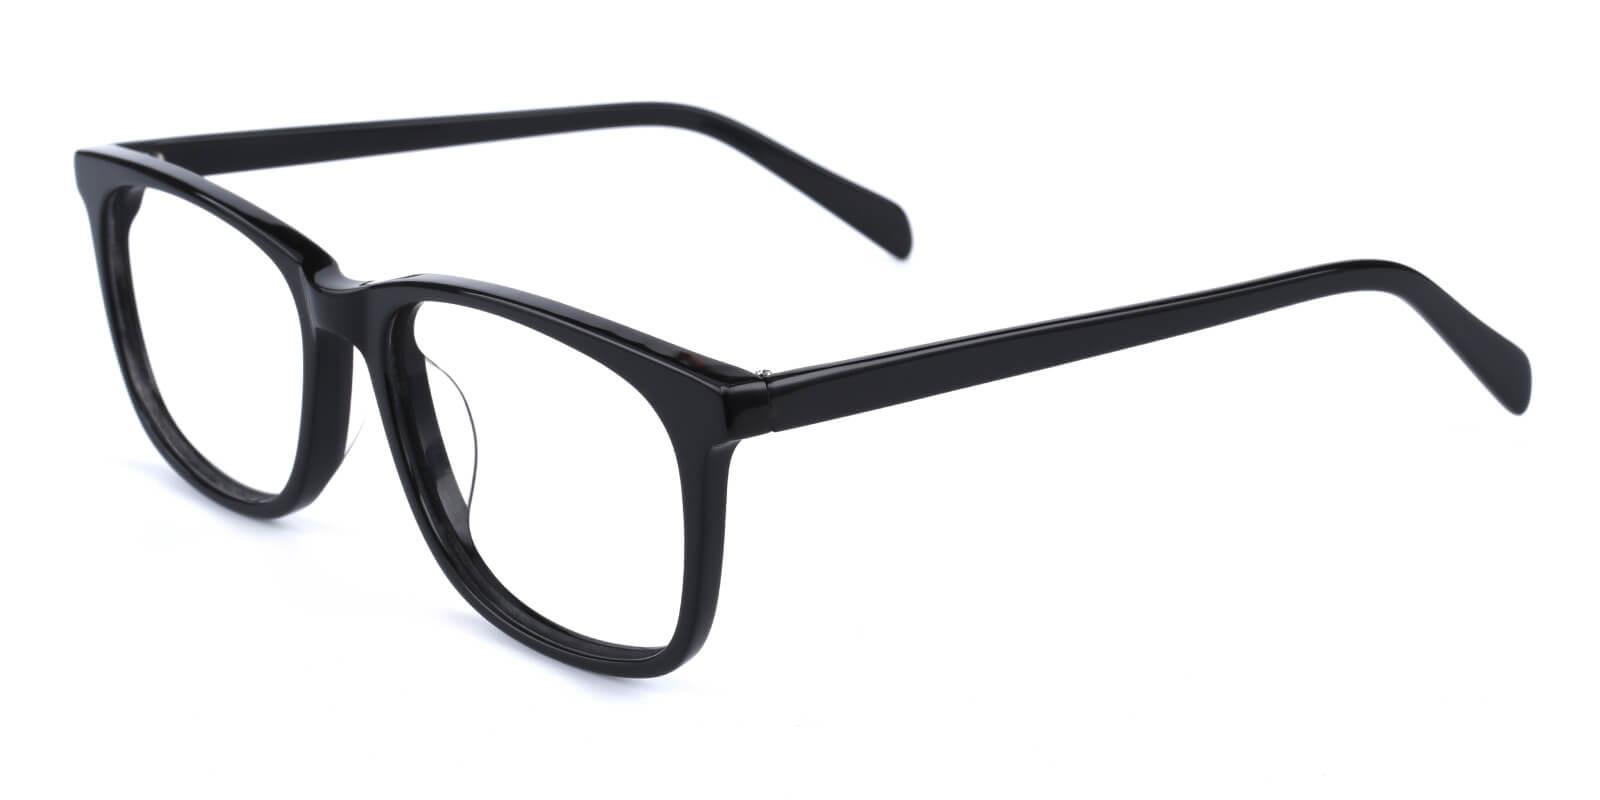 Bugger-Black-Square-Acetate-Eyeglasses-additional1